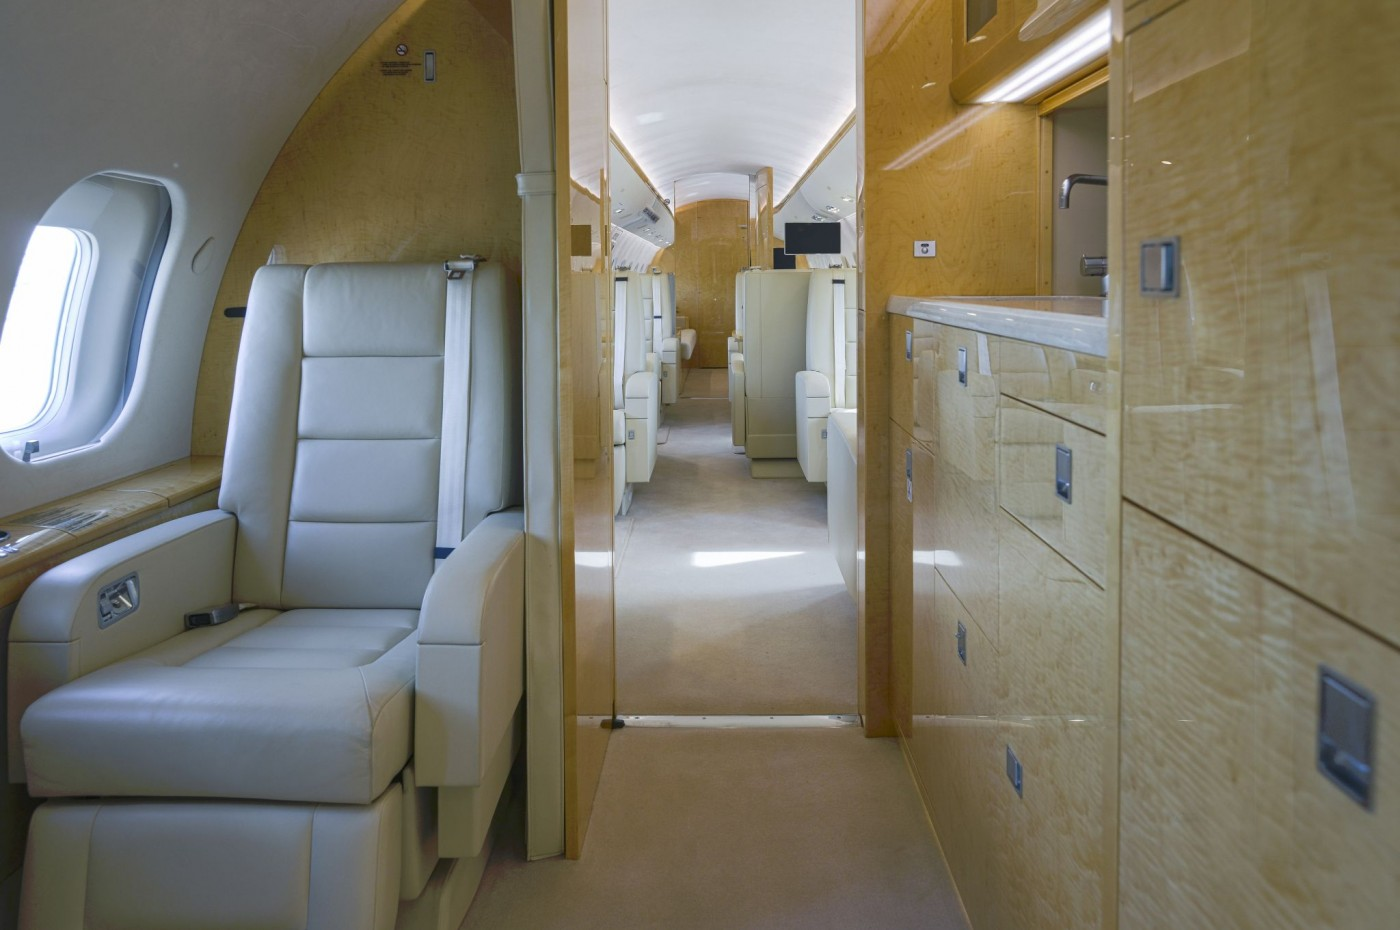 Global 6000 S/N 9695 Crew rest and galley